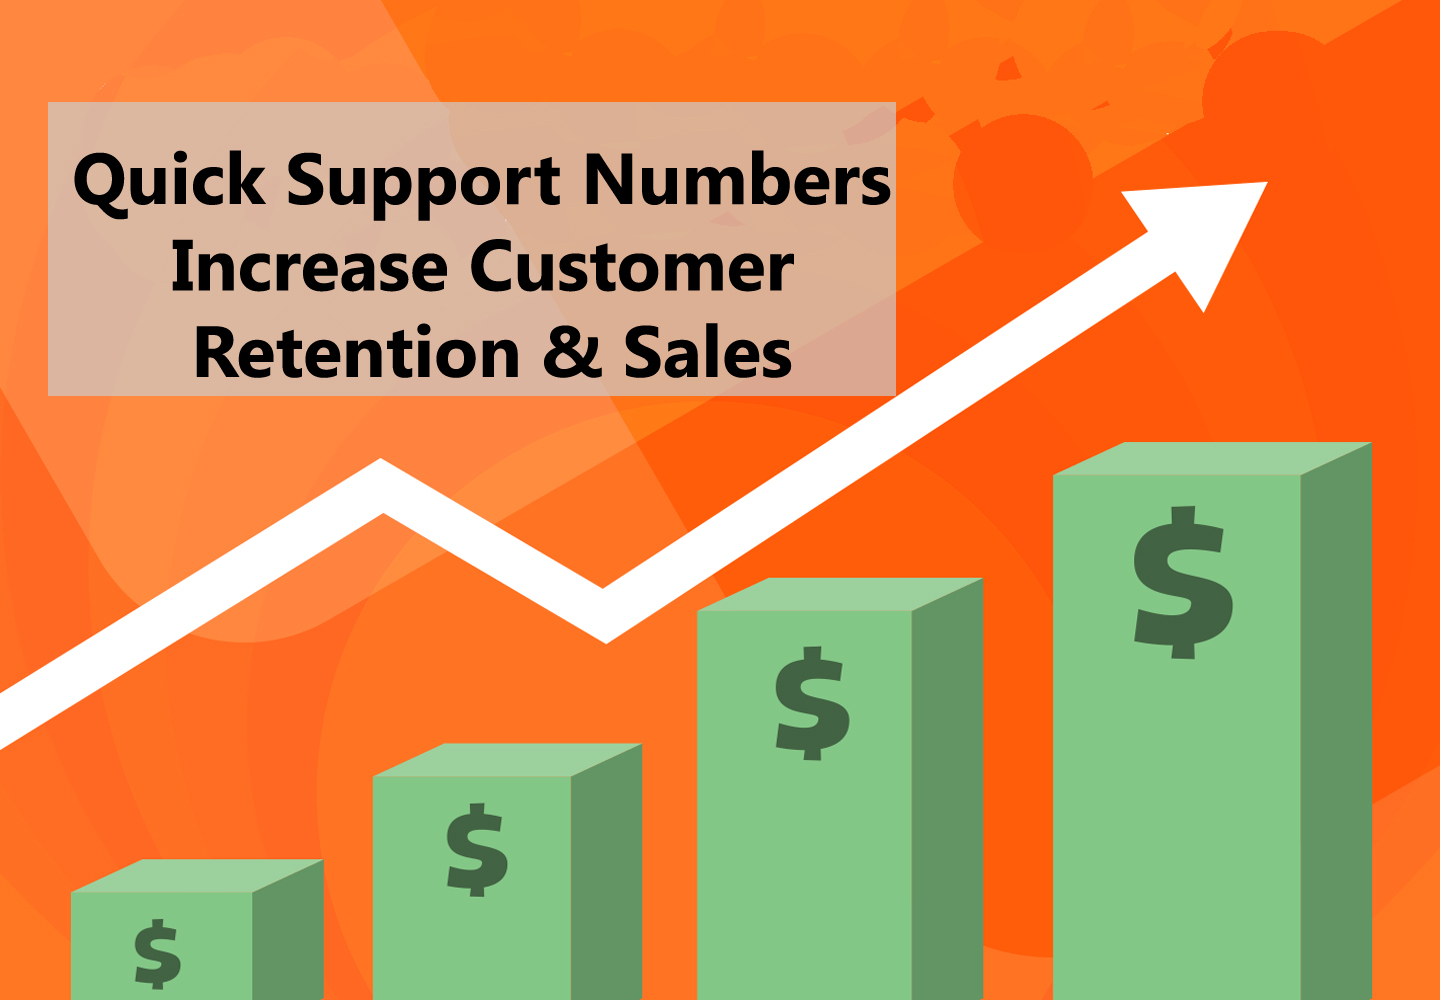 How quick support numbers increase customer retention & Sales